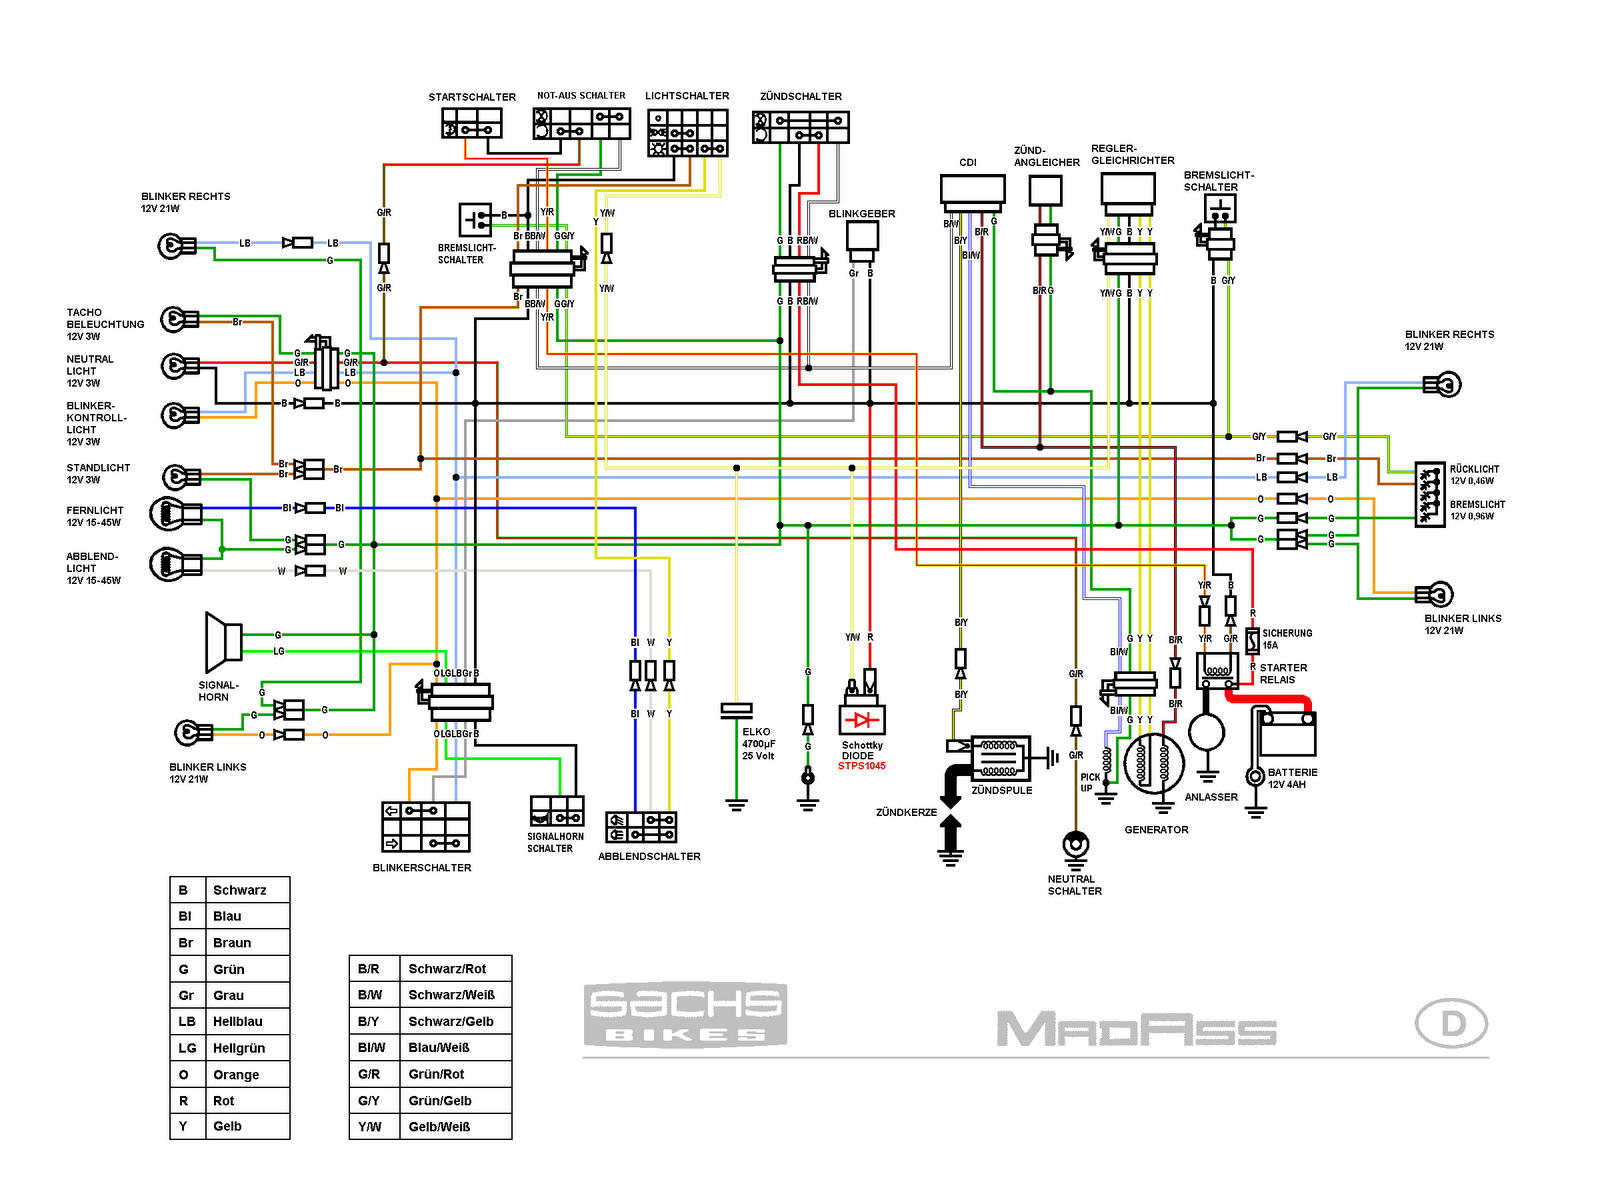 Mono Pump Wiring Diagram 3 Phase Ct Meter Diagrams Sachs Madass With Techy At Day Blogger